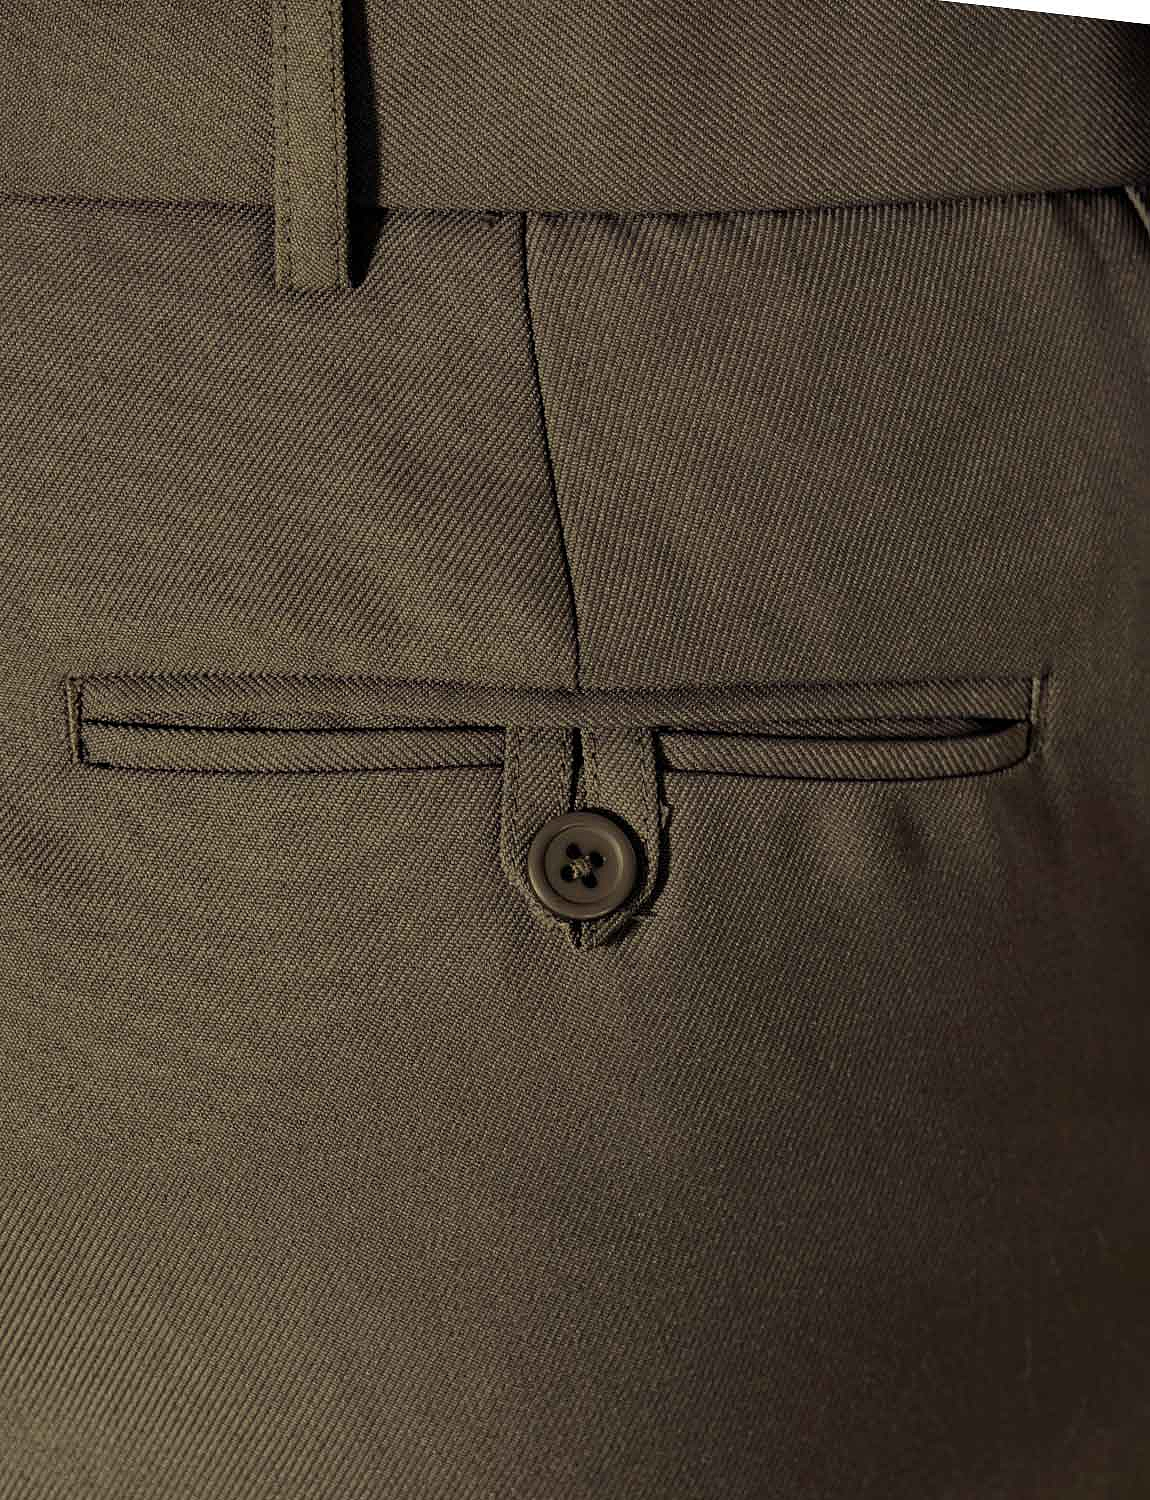 Mens-Stretch-Waist-Formal-Smart-Work-Trouser-Pants thumbnail 15